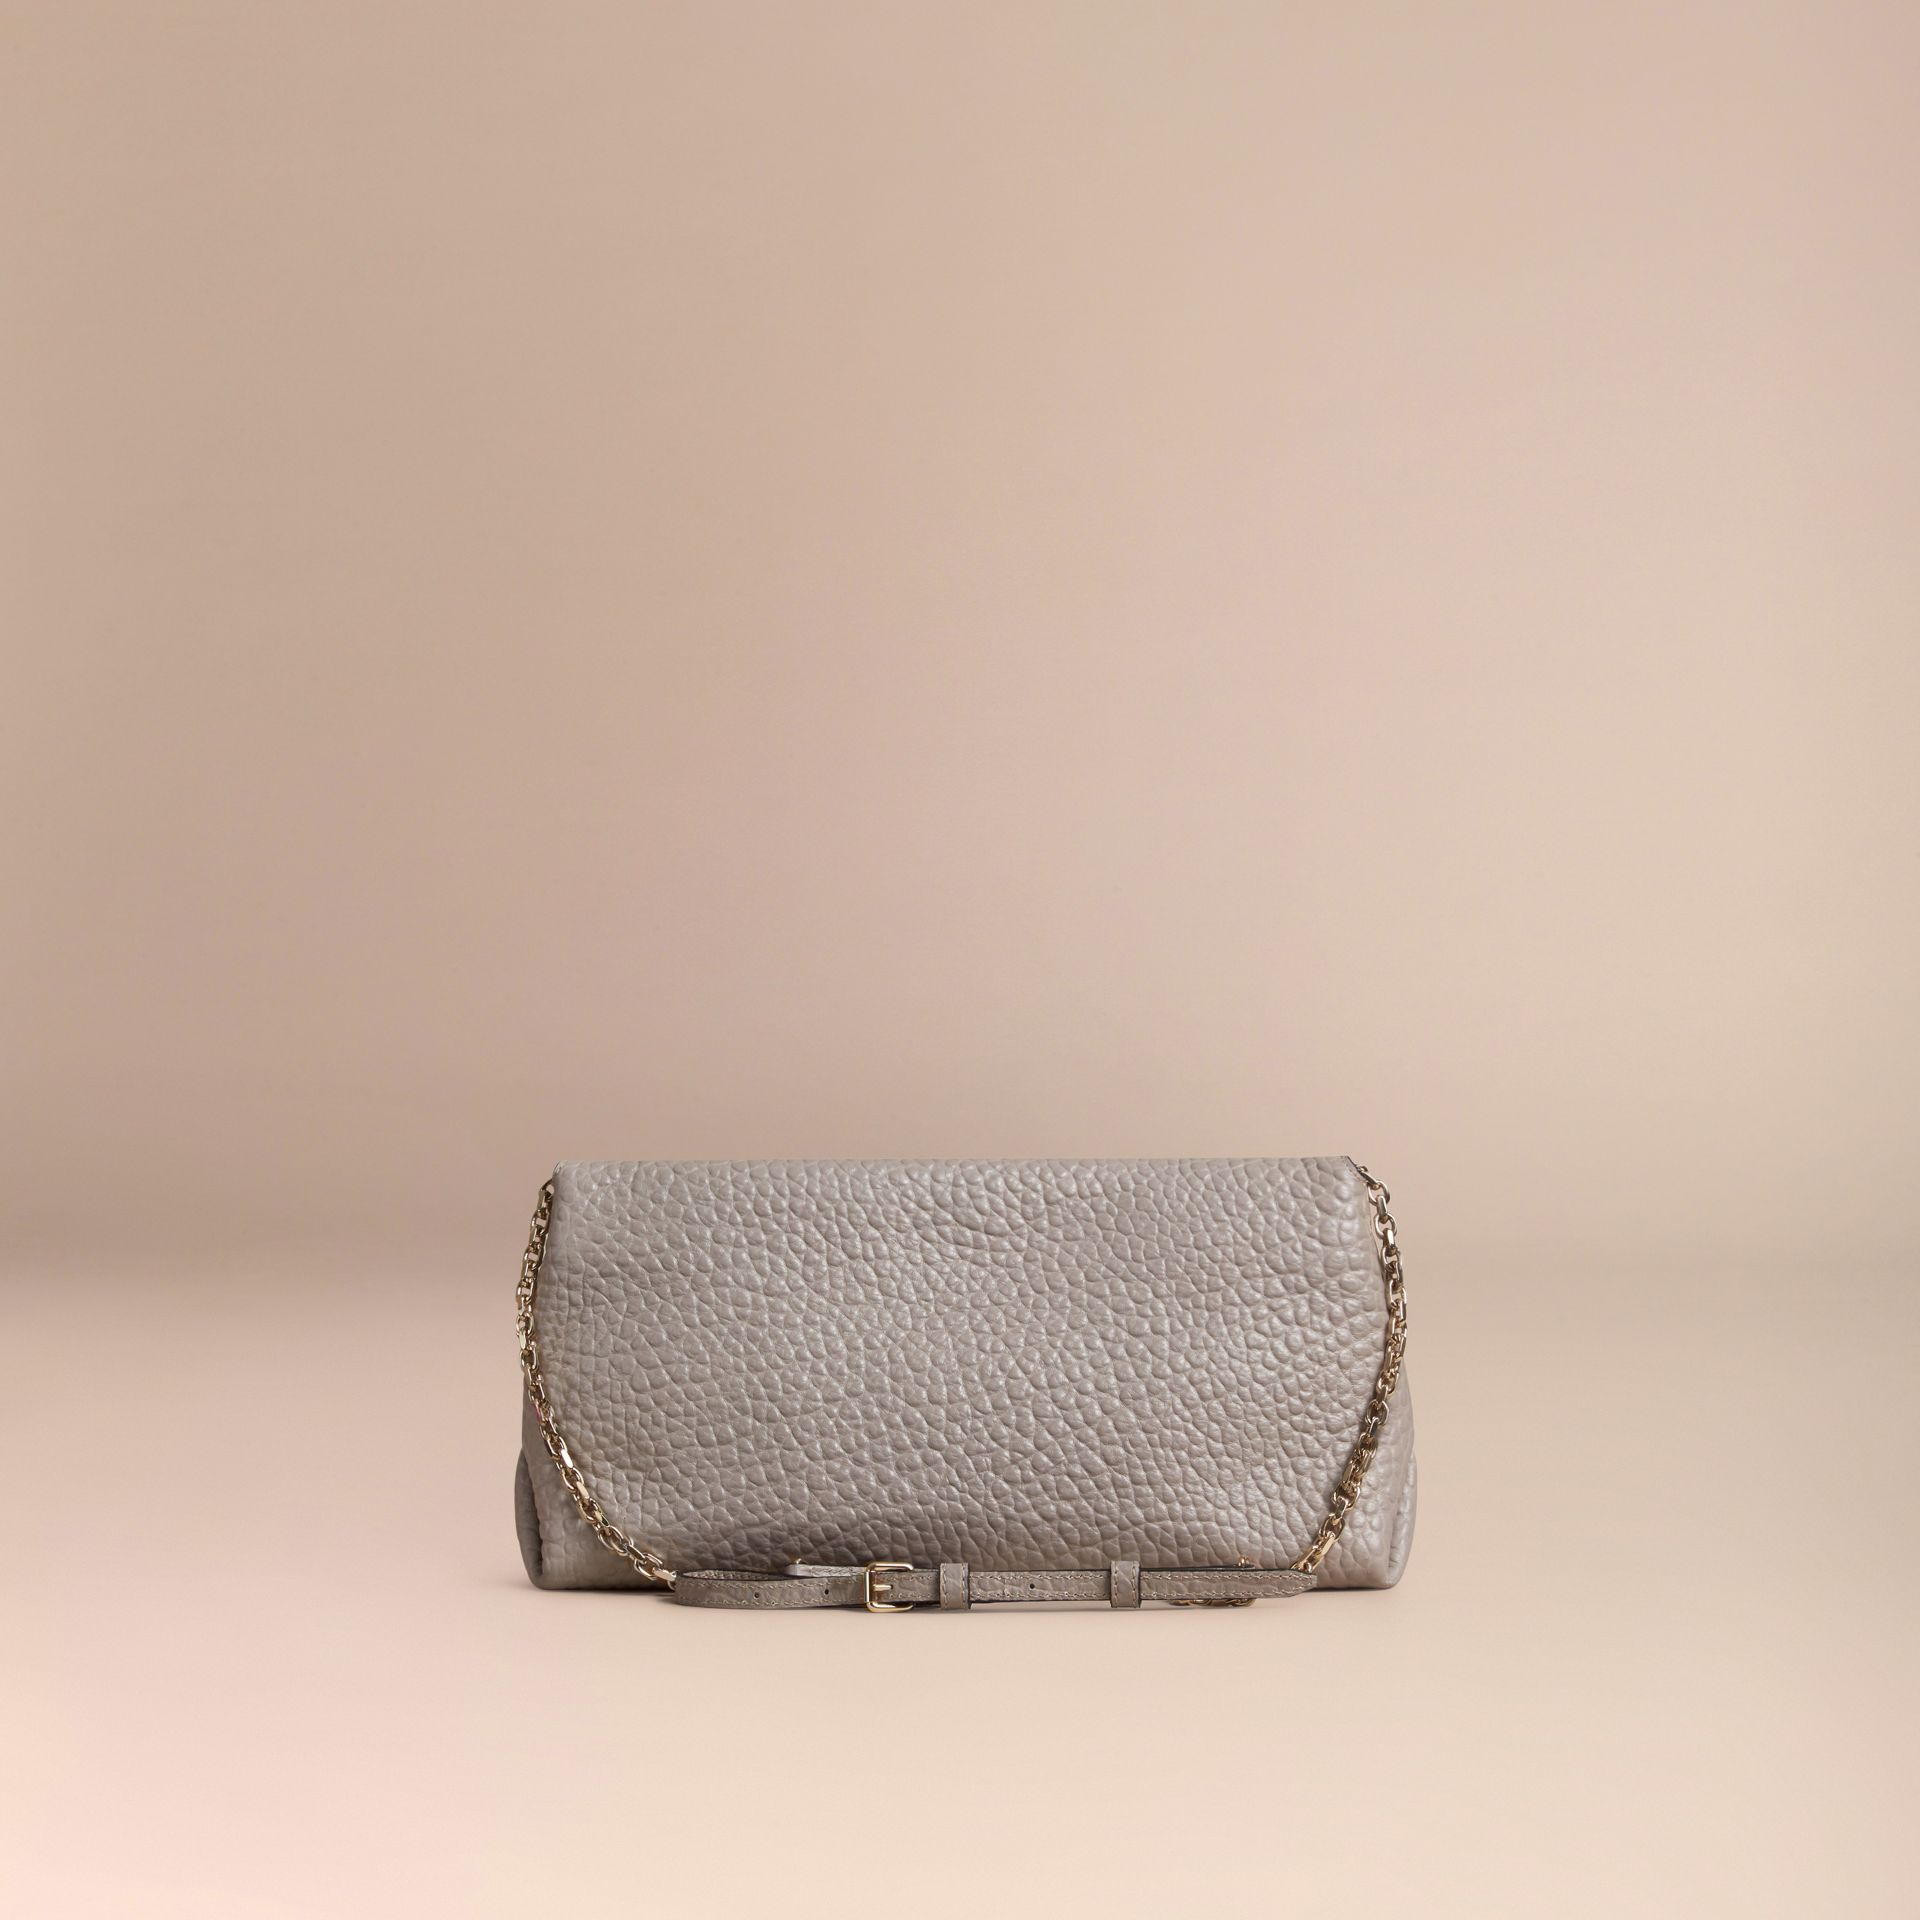 Gris pâle Clutch medium en cuir grainé emblématique Gris Pâle - photo de la galerie 4